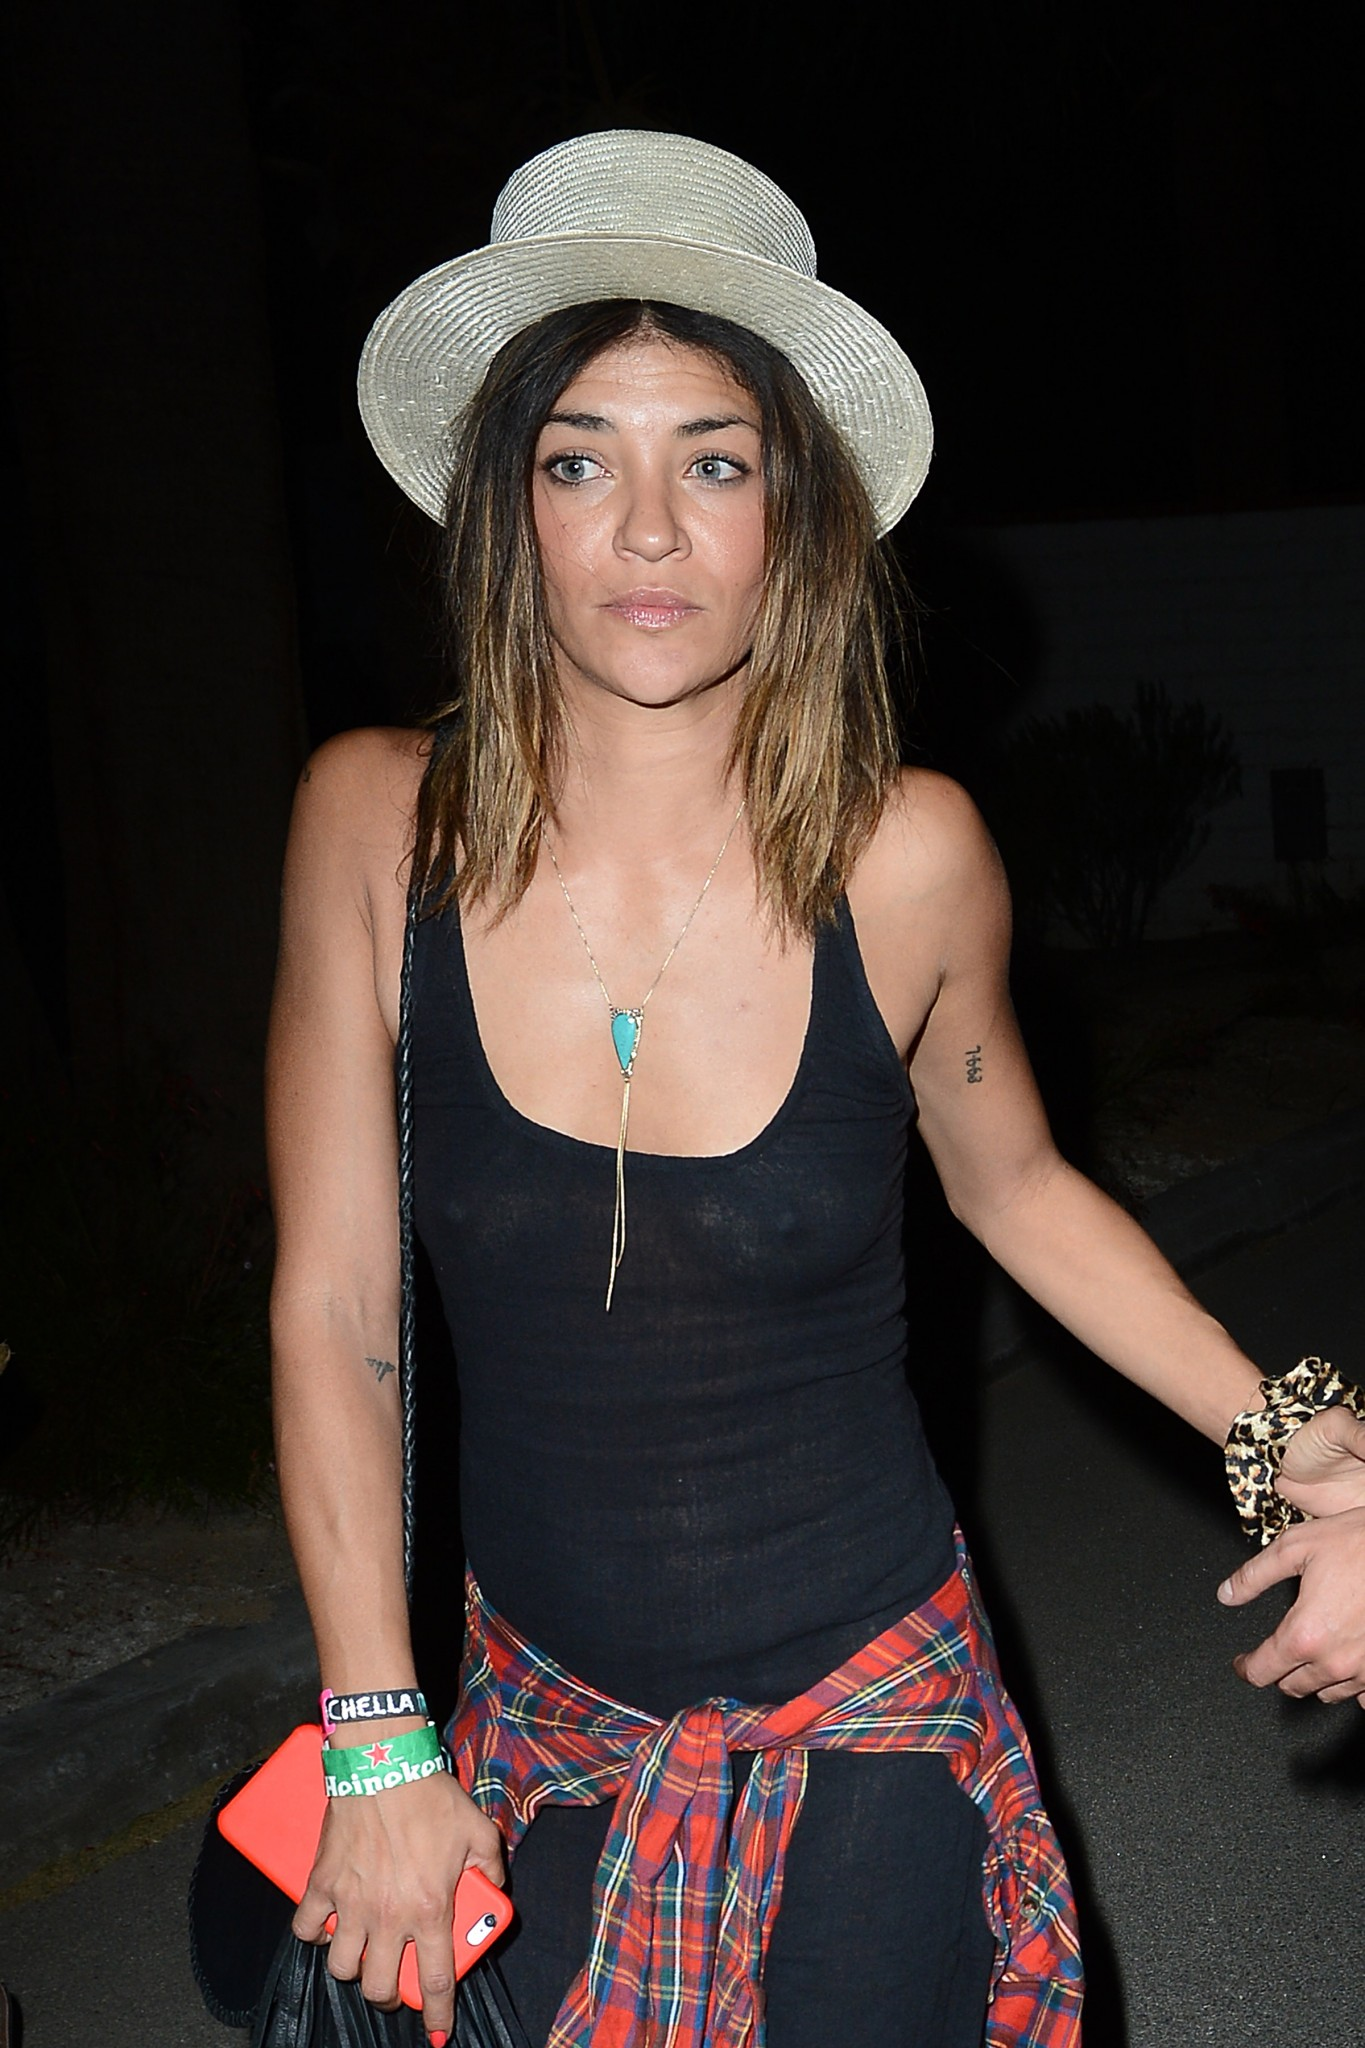 jessica-szohr-at-the-neon-carnival-10